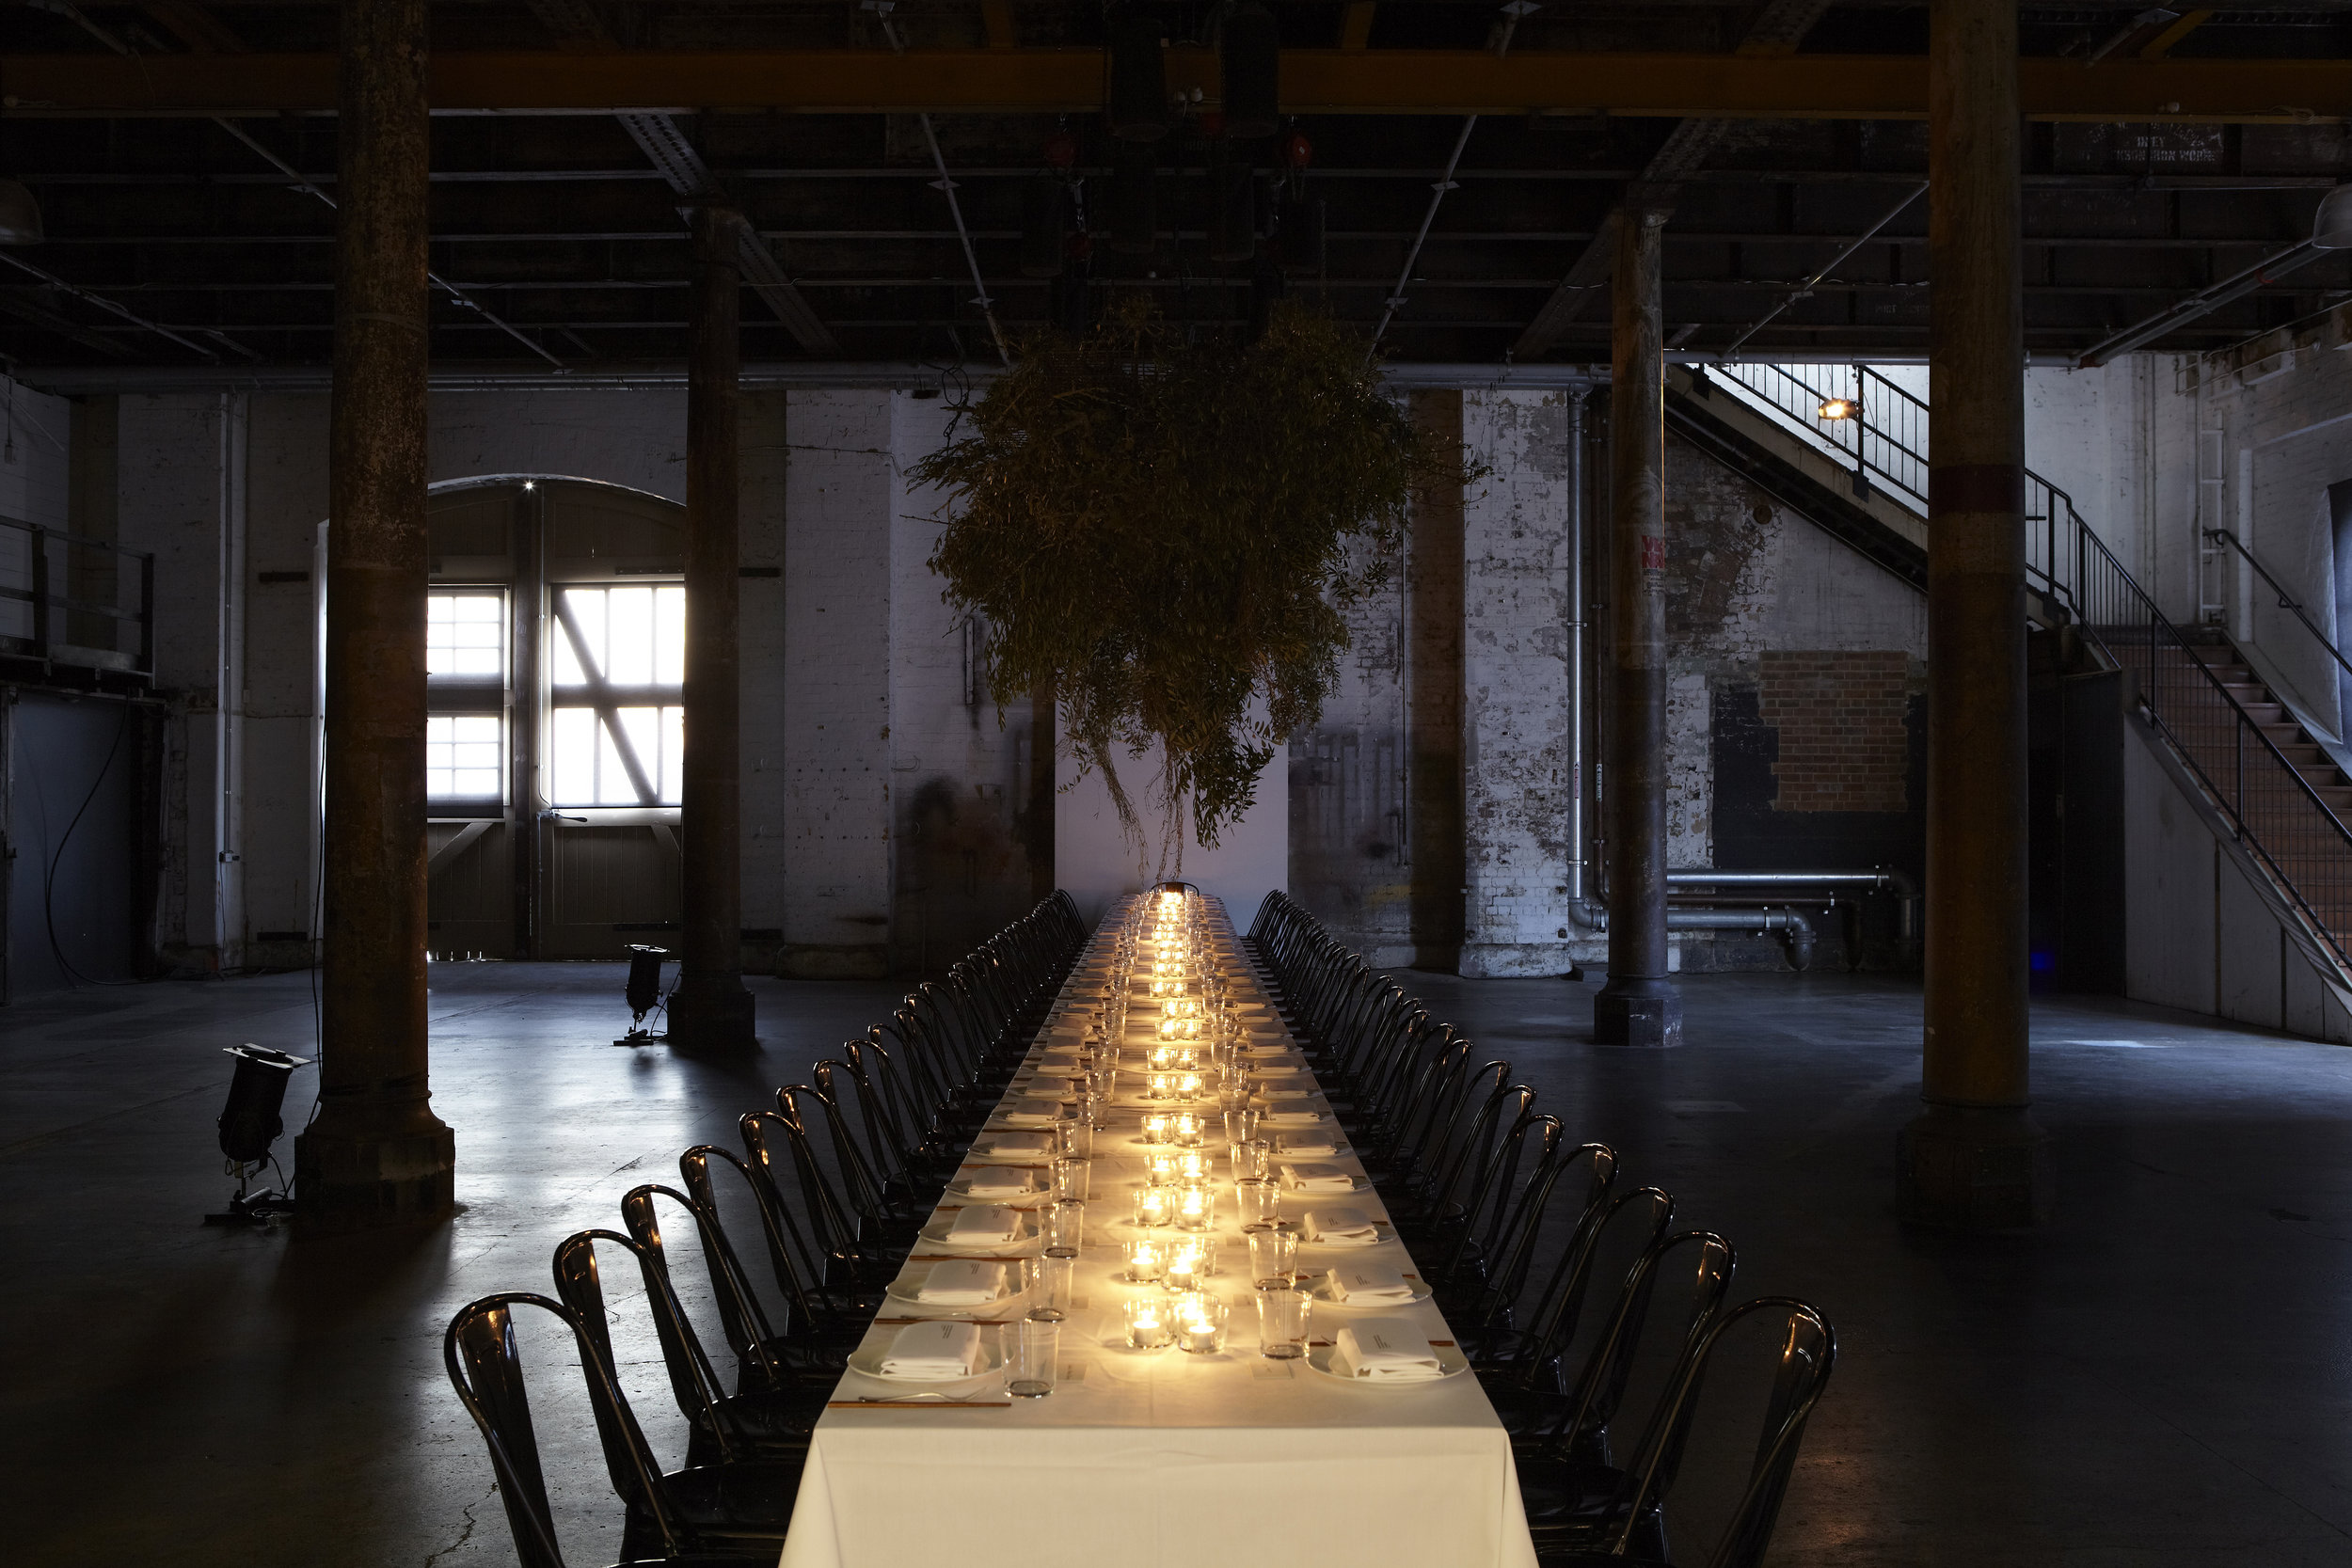 Sydney Table at Carriageworks